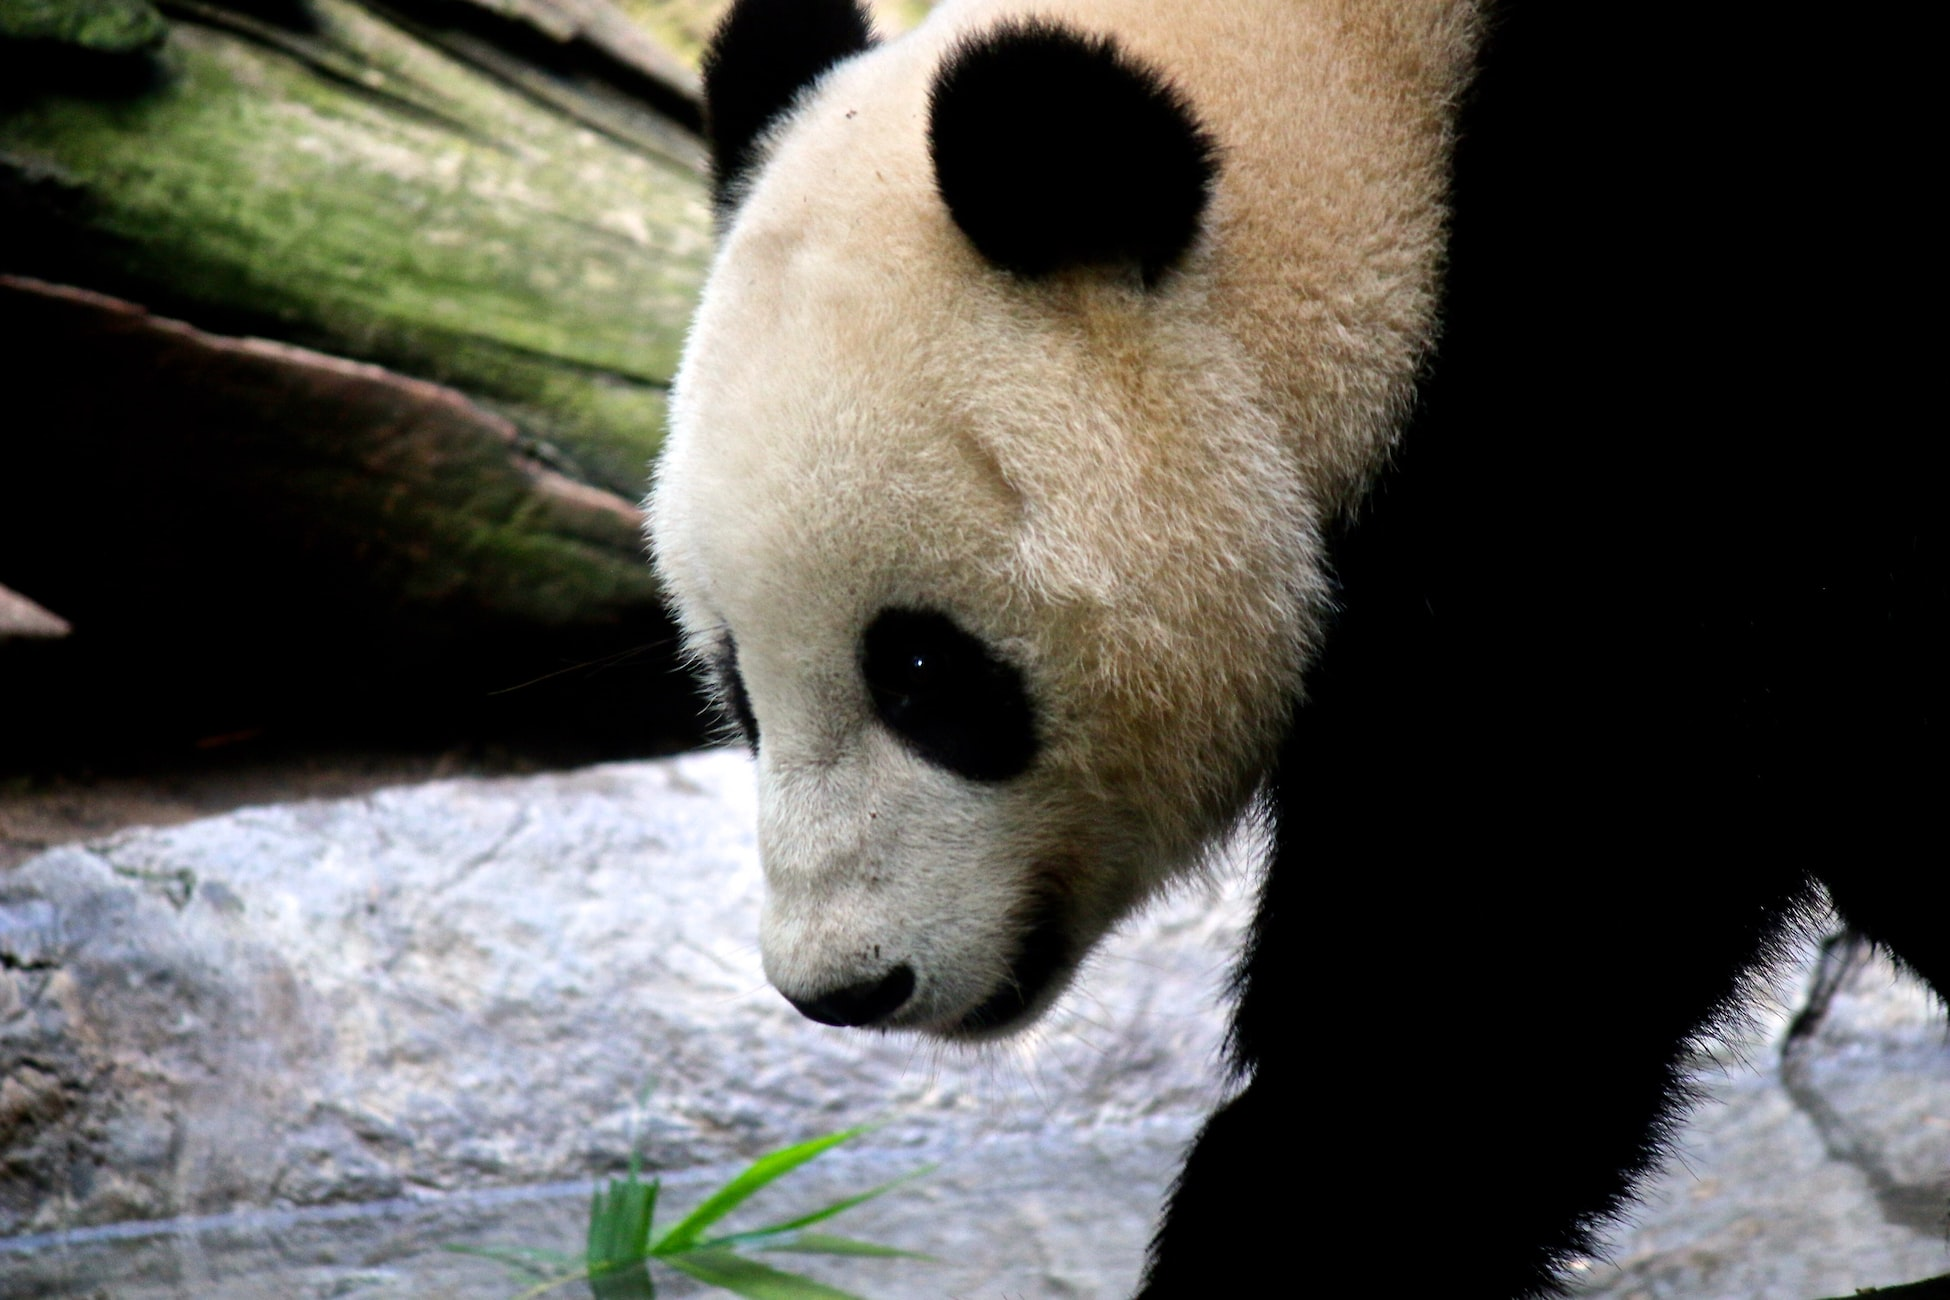 A Panda in San Diego Zoo - Things to Do in San Diego